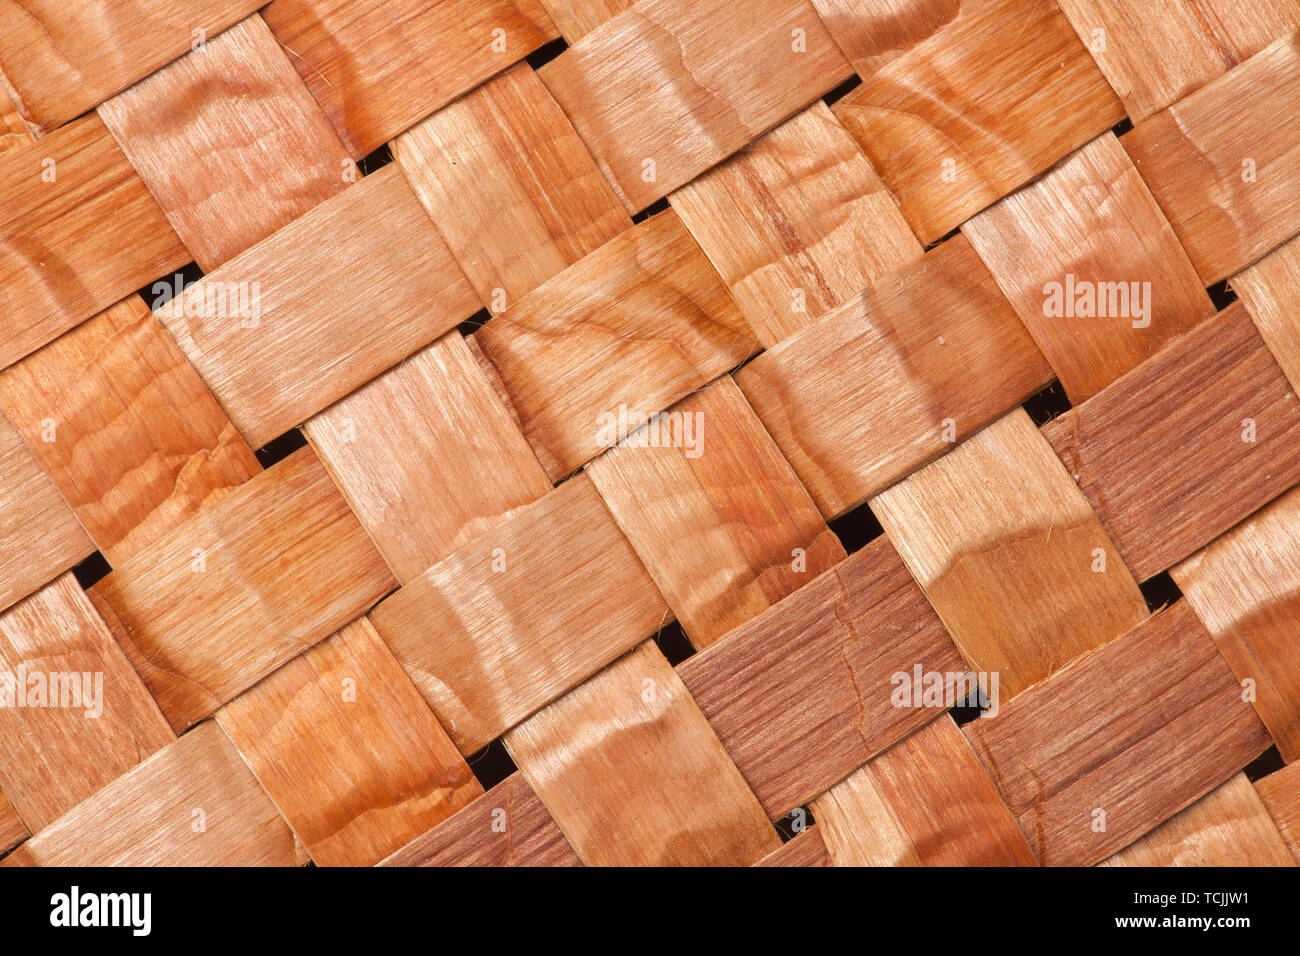 Close-up of a hand-woven mat made of pliant inner bark of a Western Red Cedar tree - Stock Image